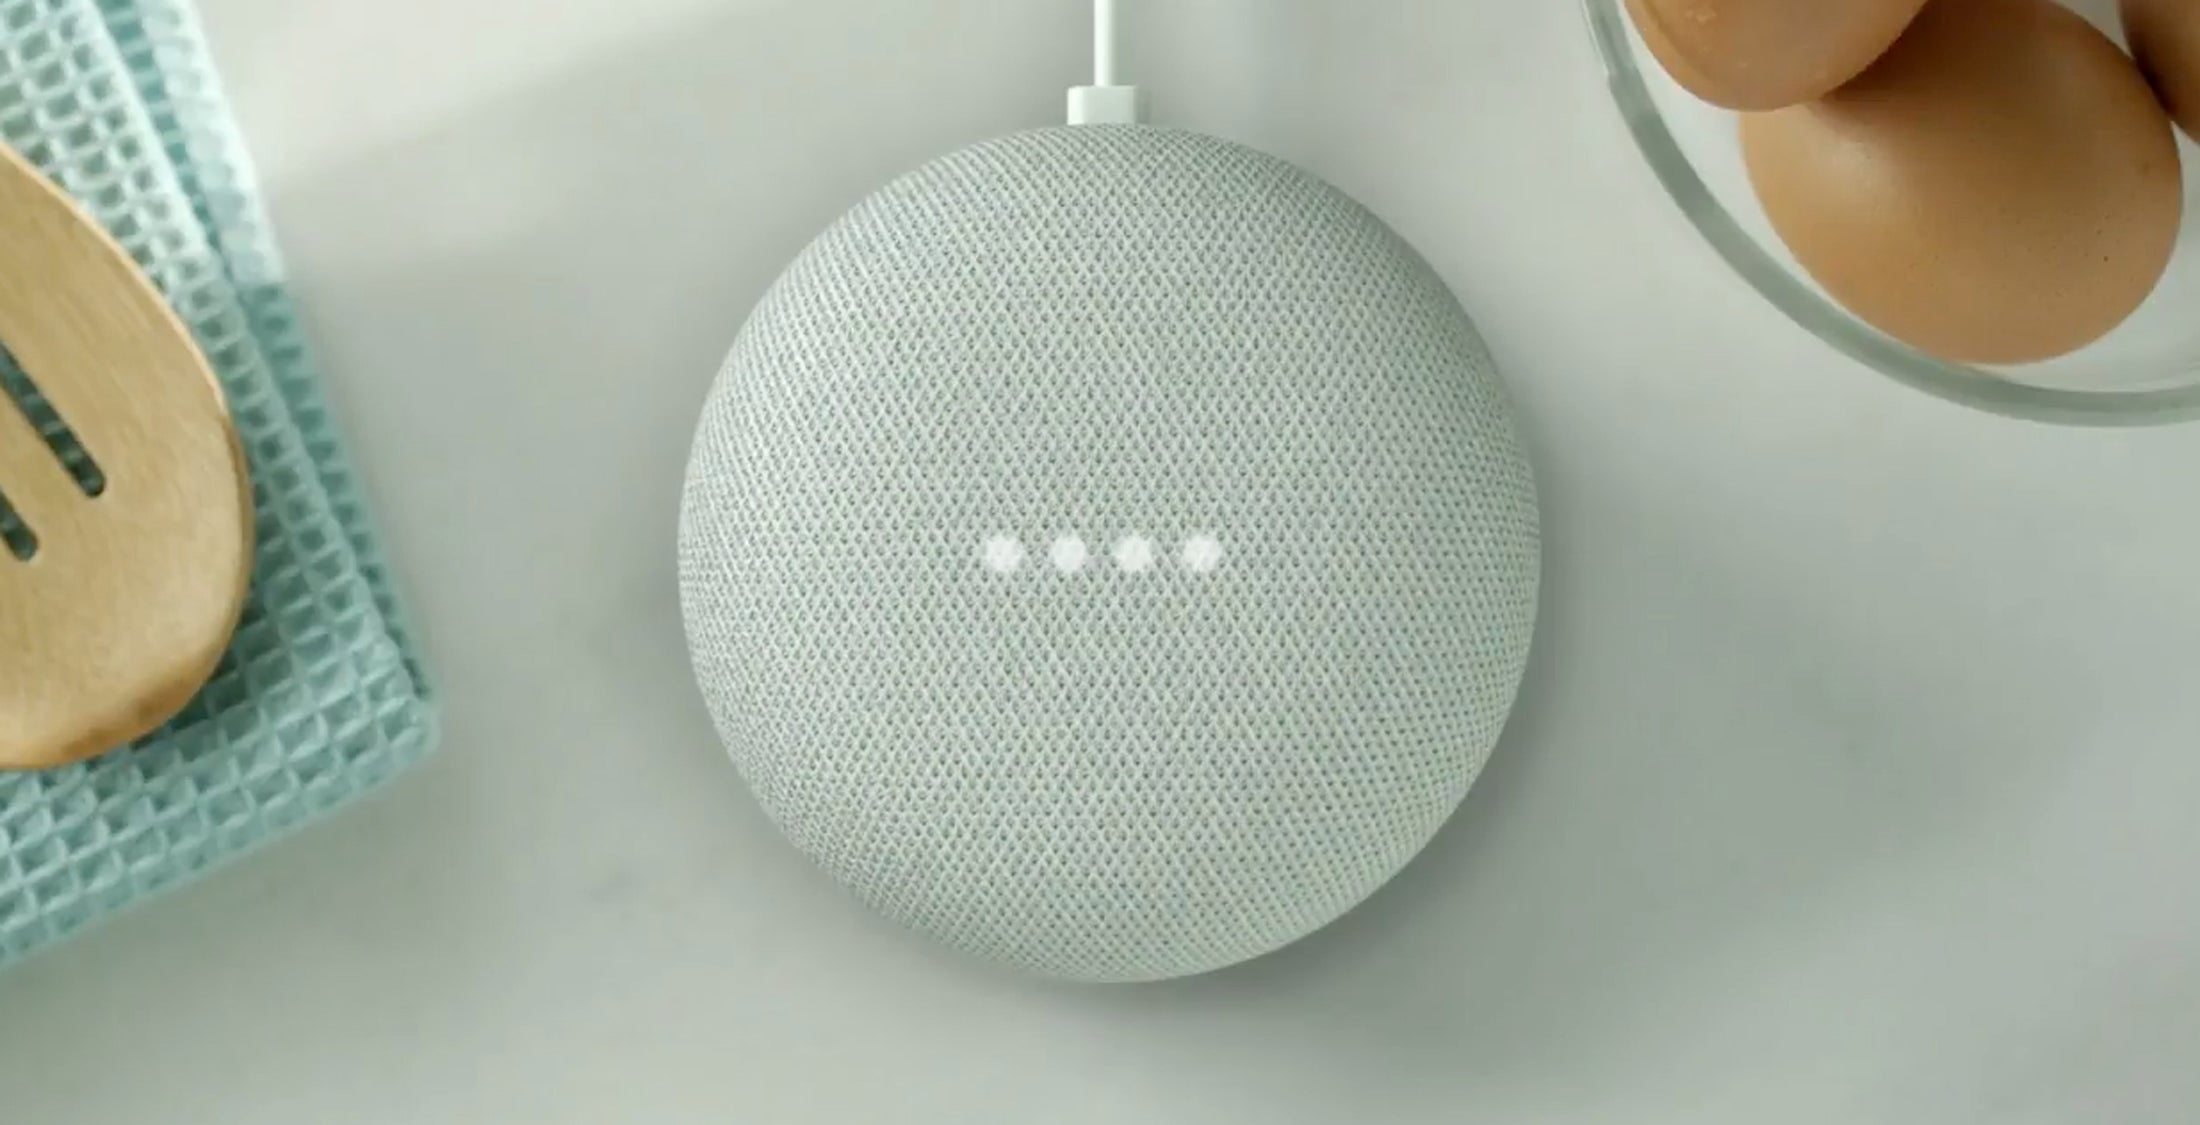 A firmware bug is bricking Google Home devices